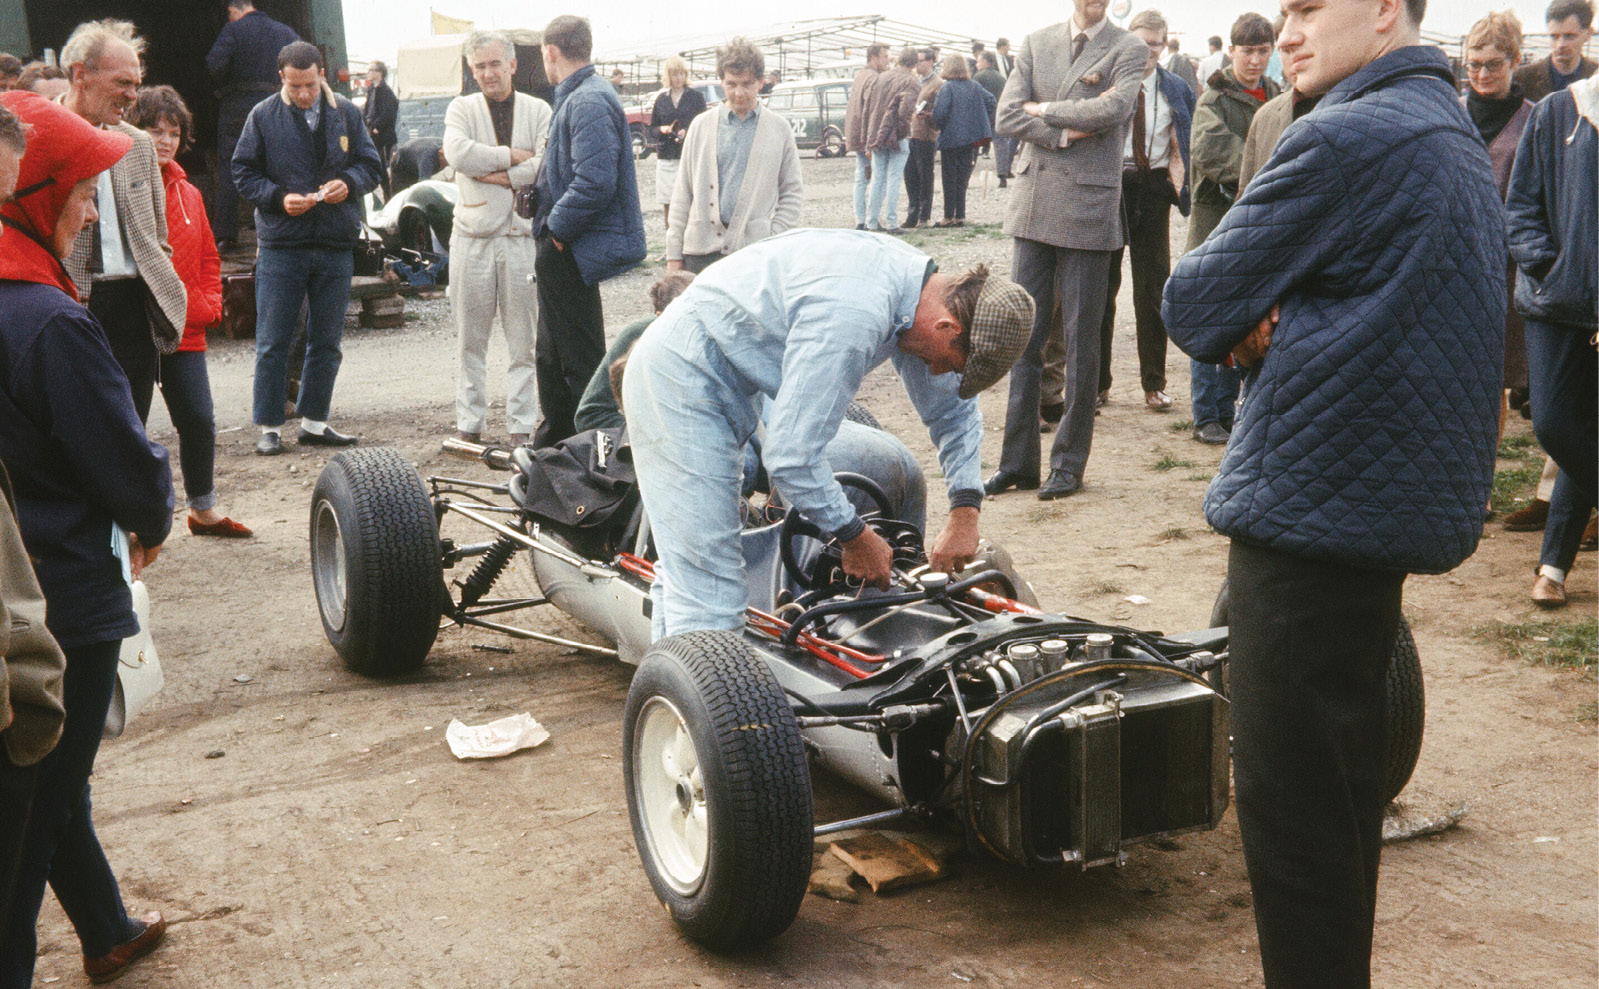 Graham Hill appears to be adjusting the steering column reach in John Coombs' Lotus 35-BRM, which he took to fourth place in the British Eagle Trophy F2 race at Brands Hatch on August 30. Jim Clark won in a Ron Harris-Team Lotus 35-Cosworth